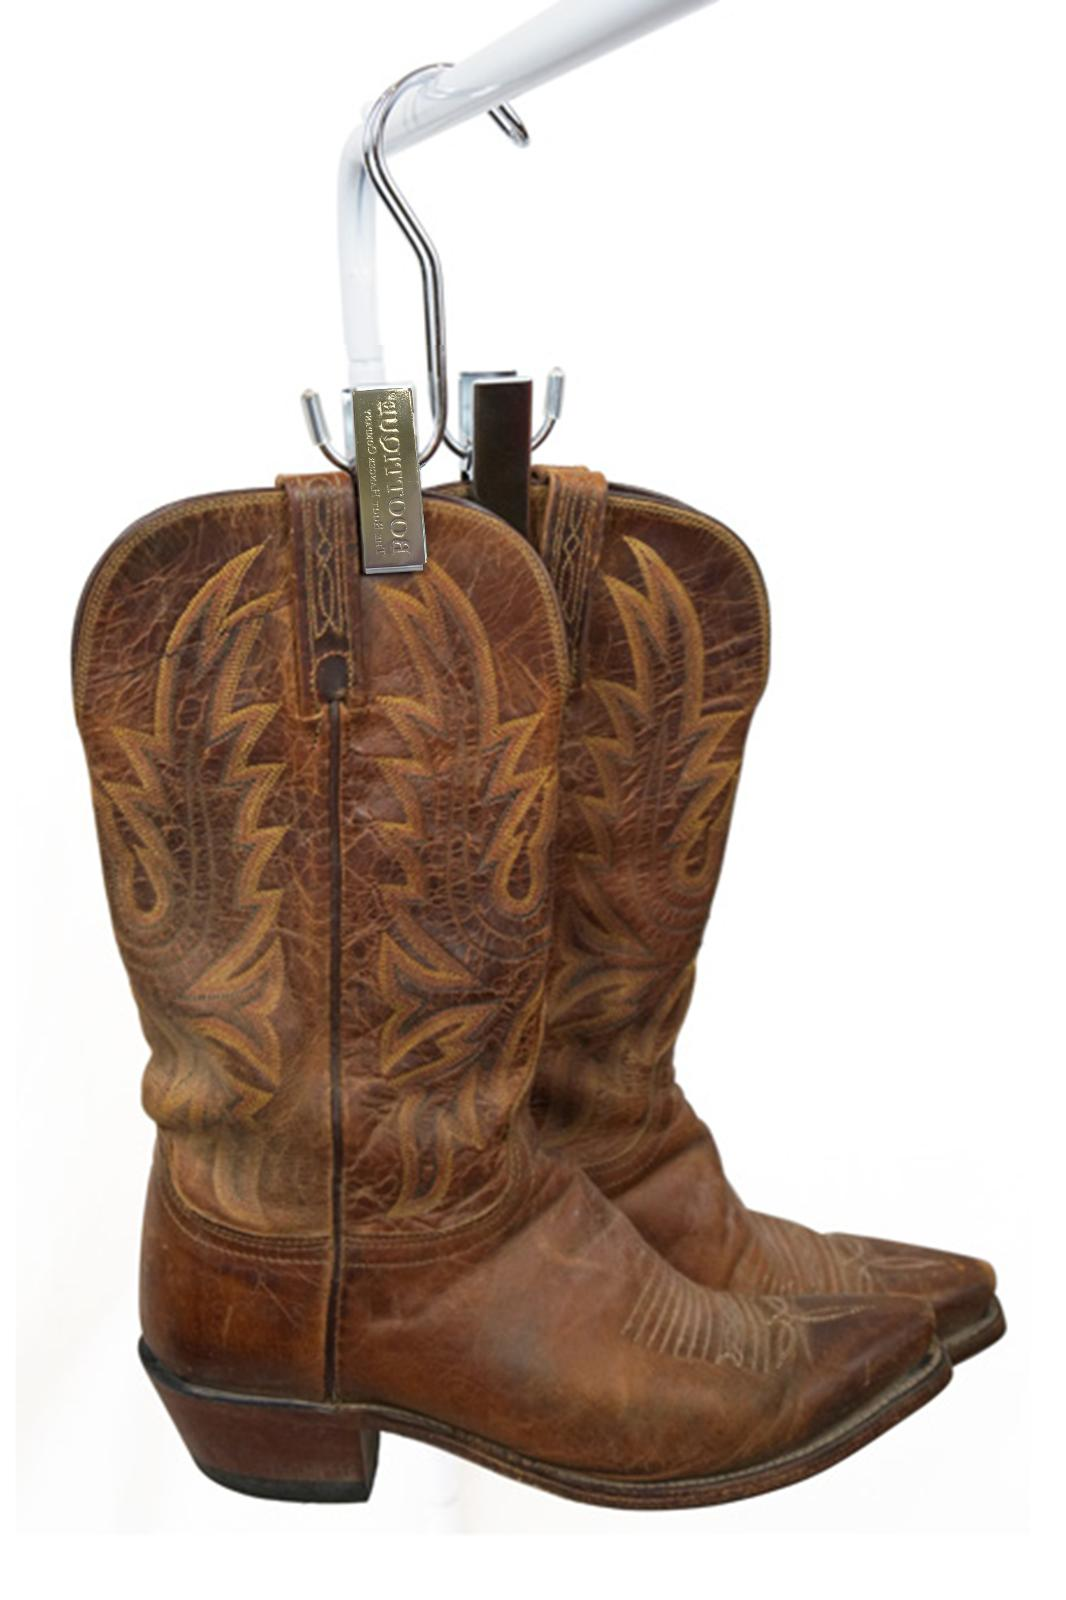 The Boot ; Equestrian, Work Boot